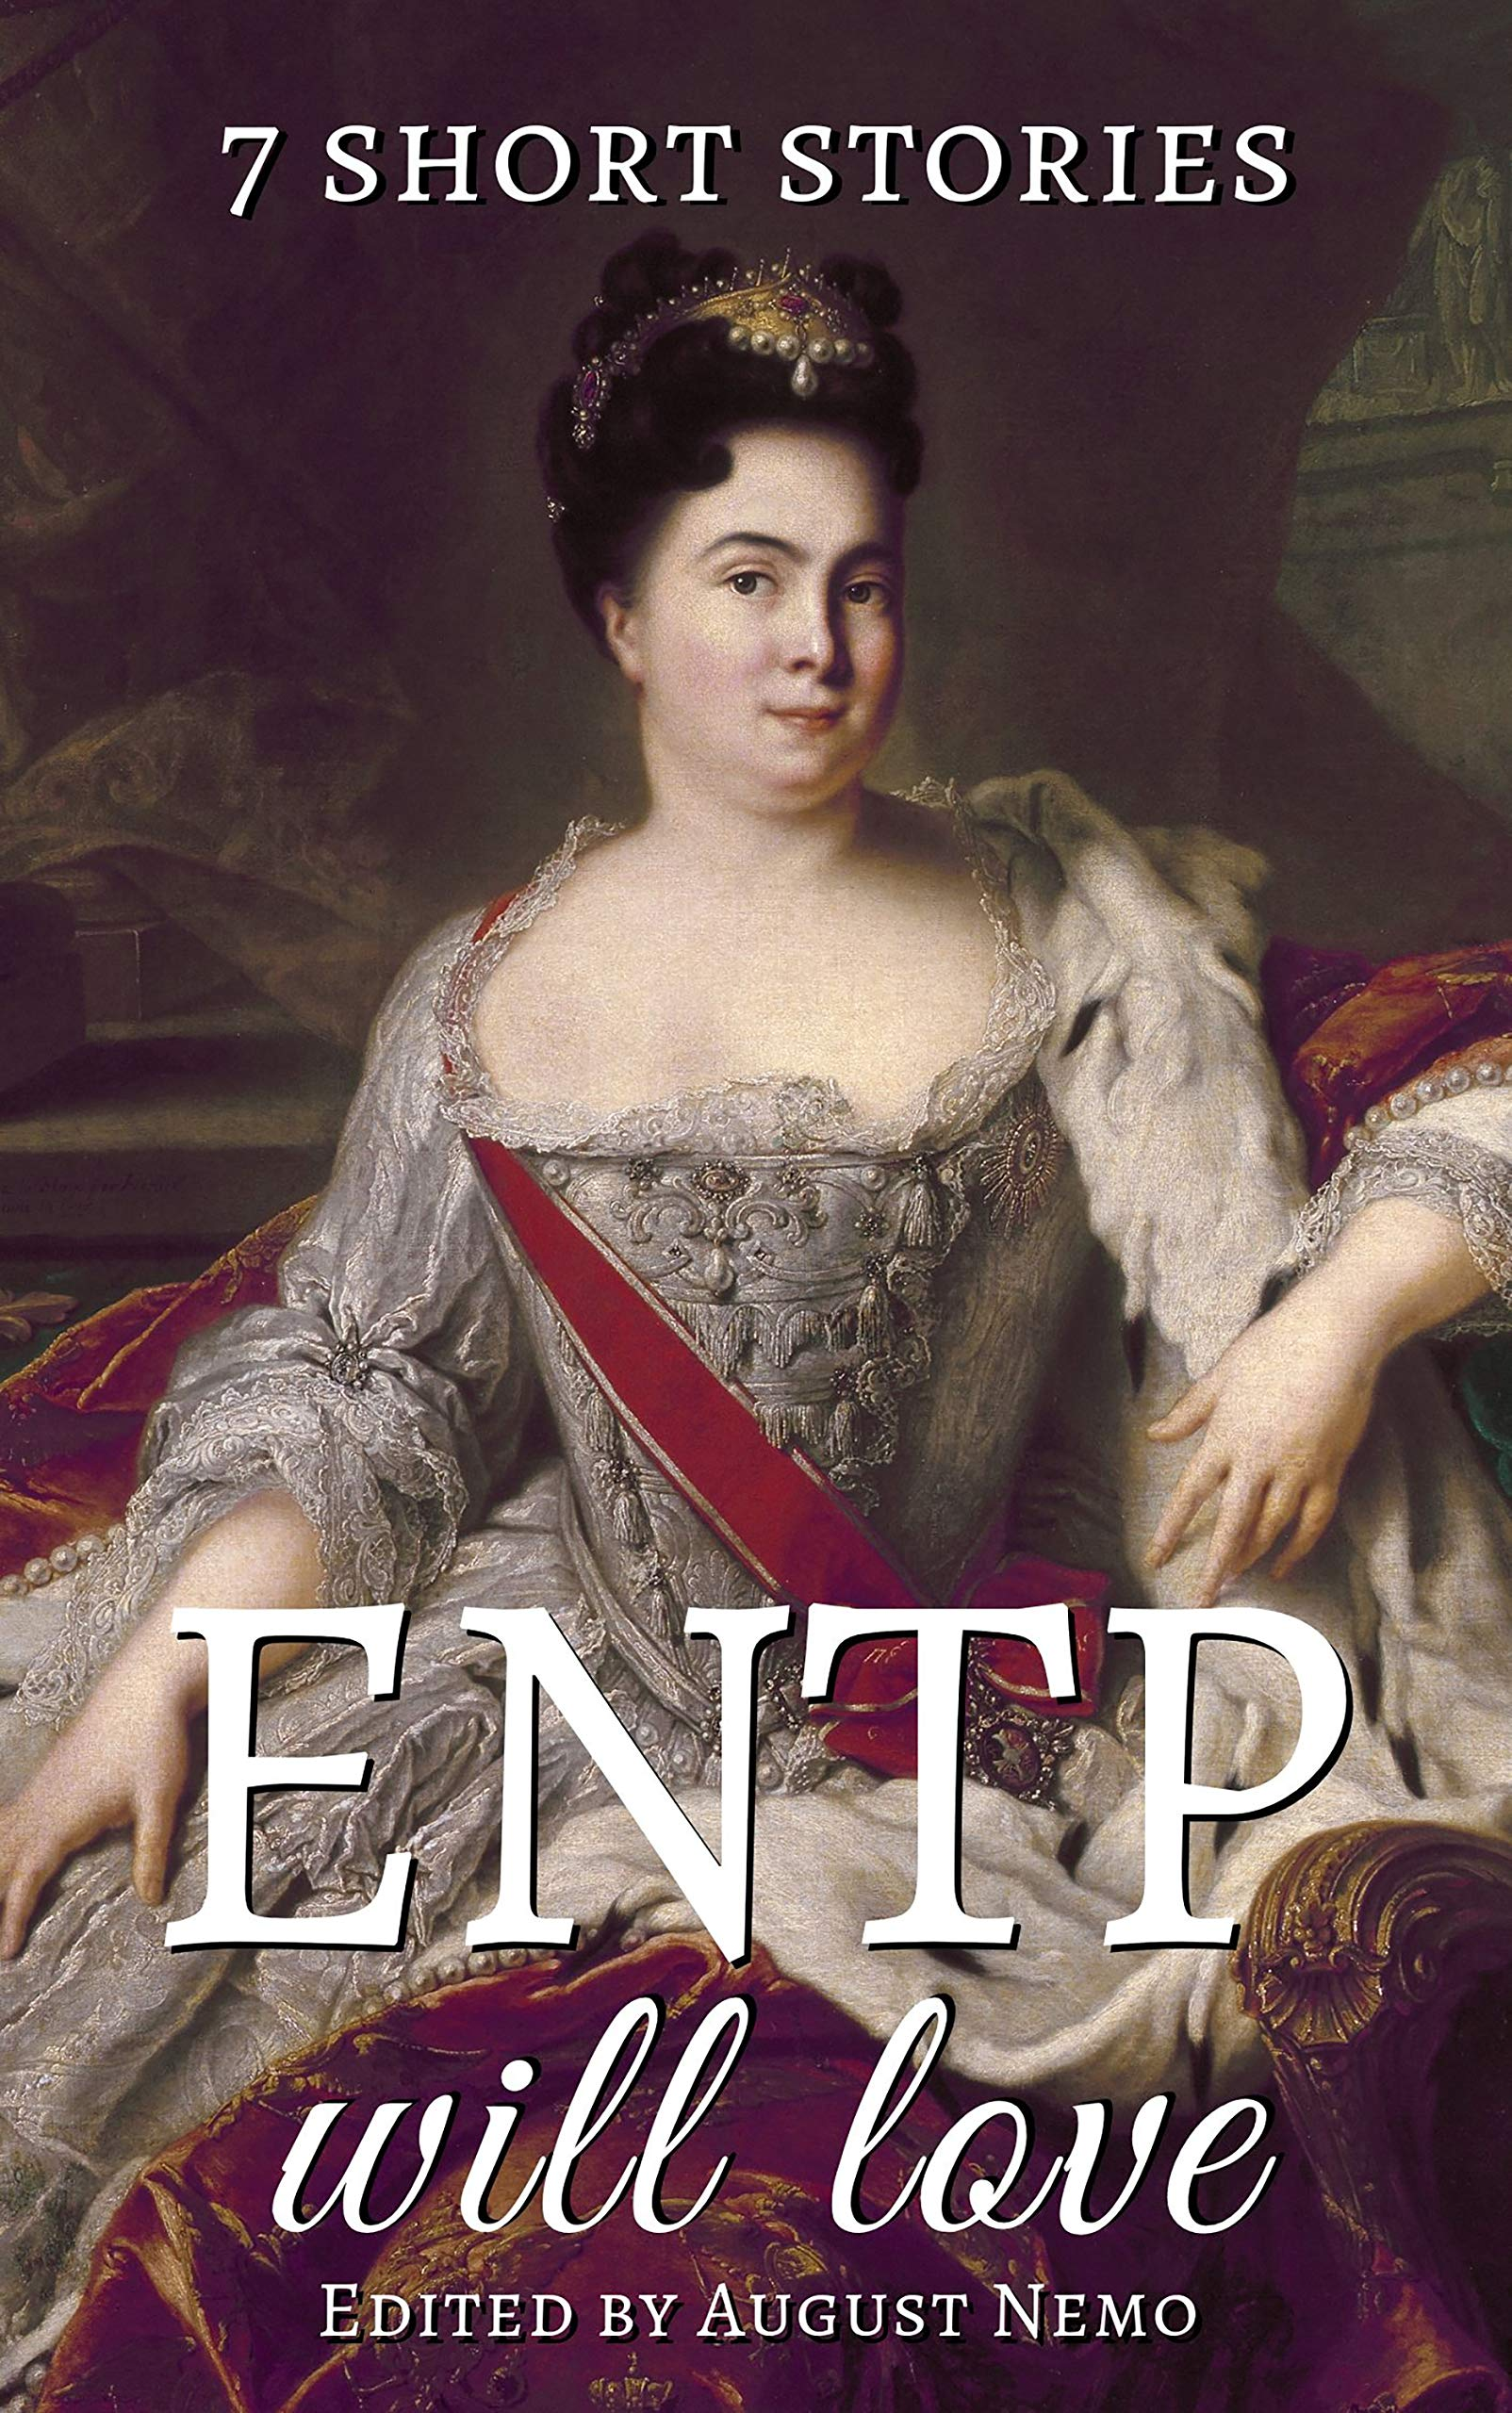 7 short stories that ENTP will love (7 short stories for your Myers-Briggs type Book 4)